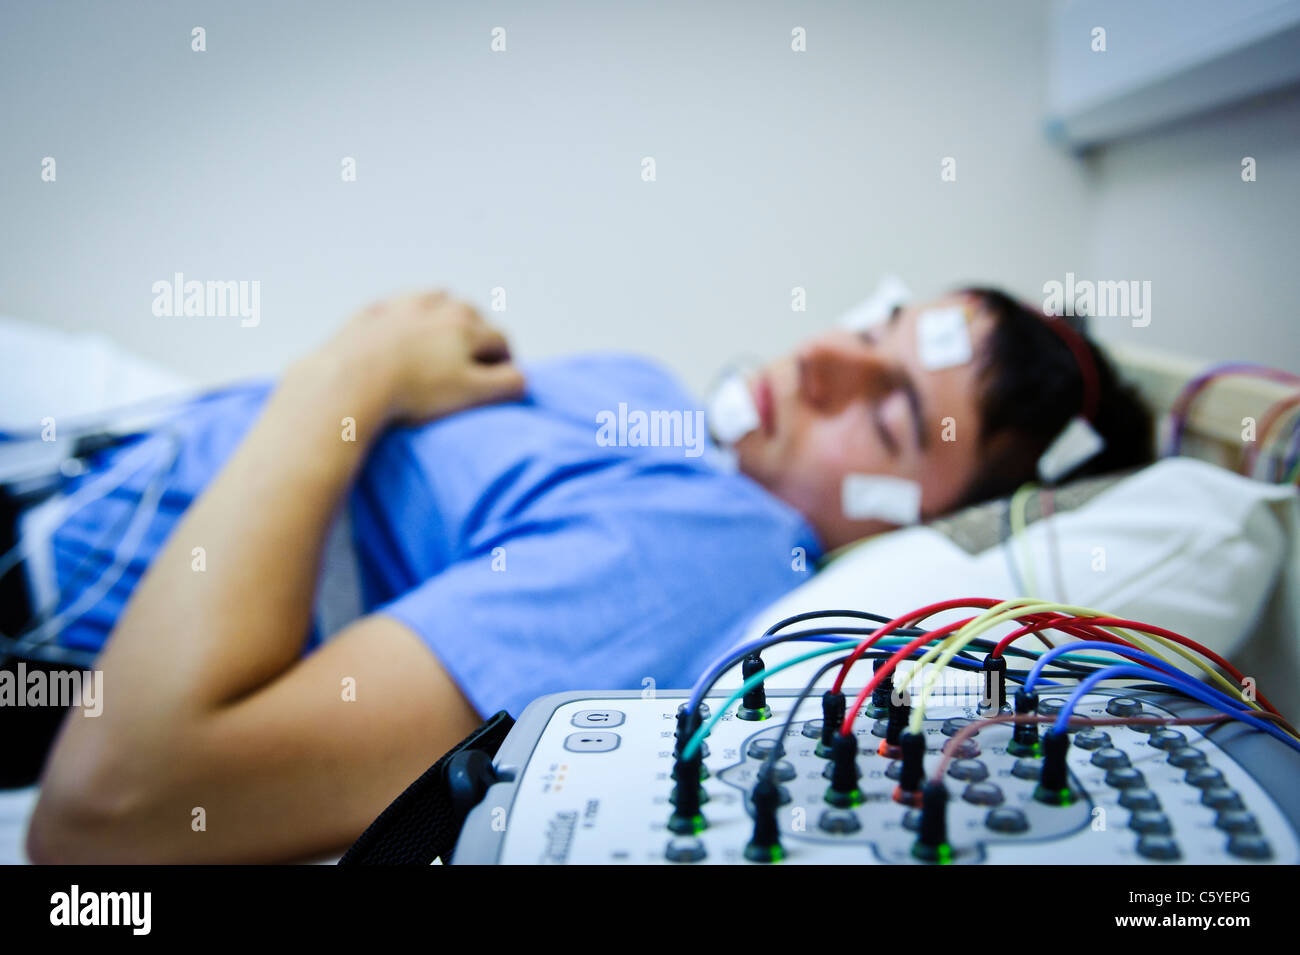 sleep lab EEG monitoring machine equipment electrodes and wires ...